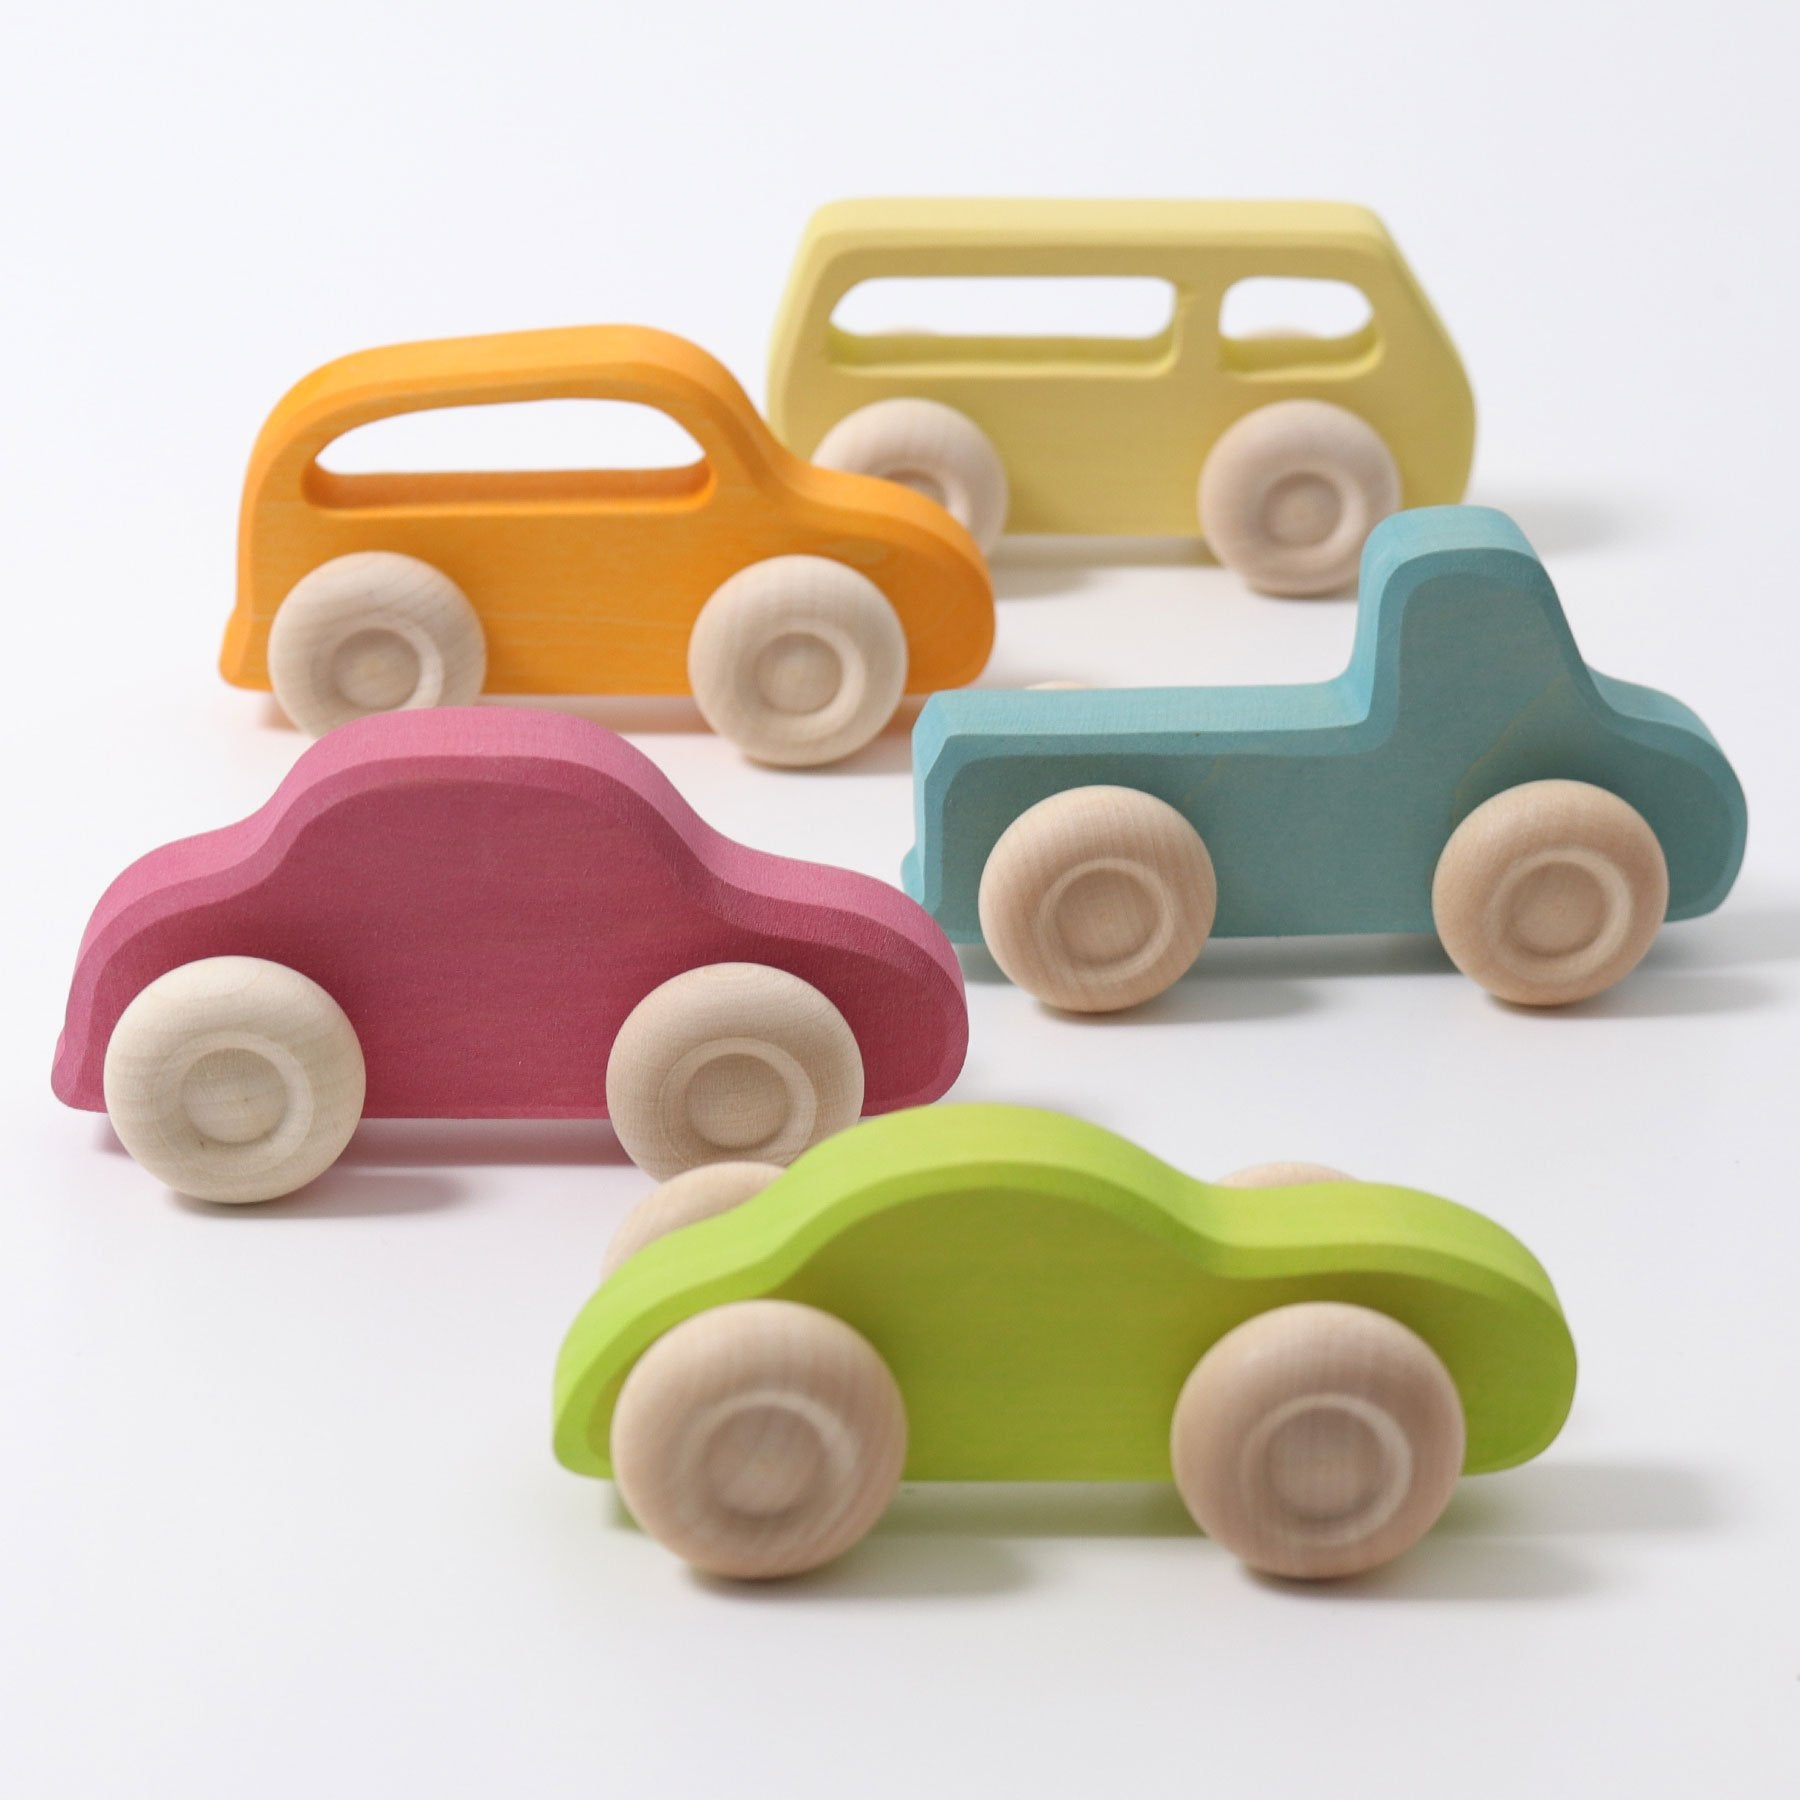 Grimms Slimline Wooden Cars Grimms Wooden Toys at Little Earth Nest Eco Shop